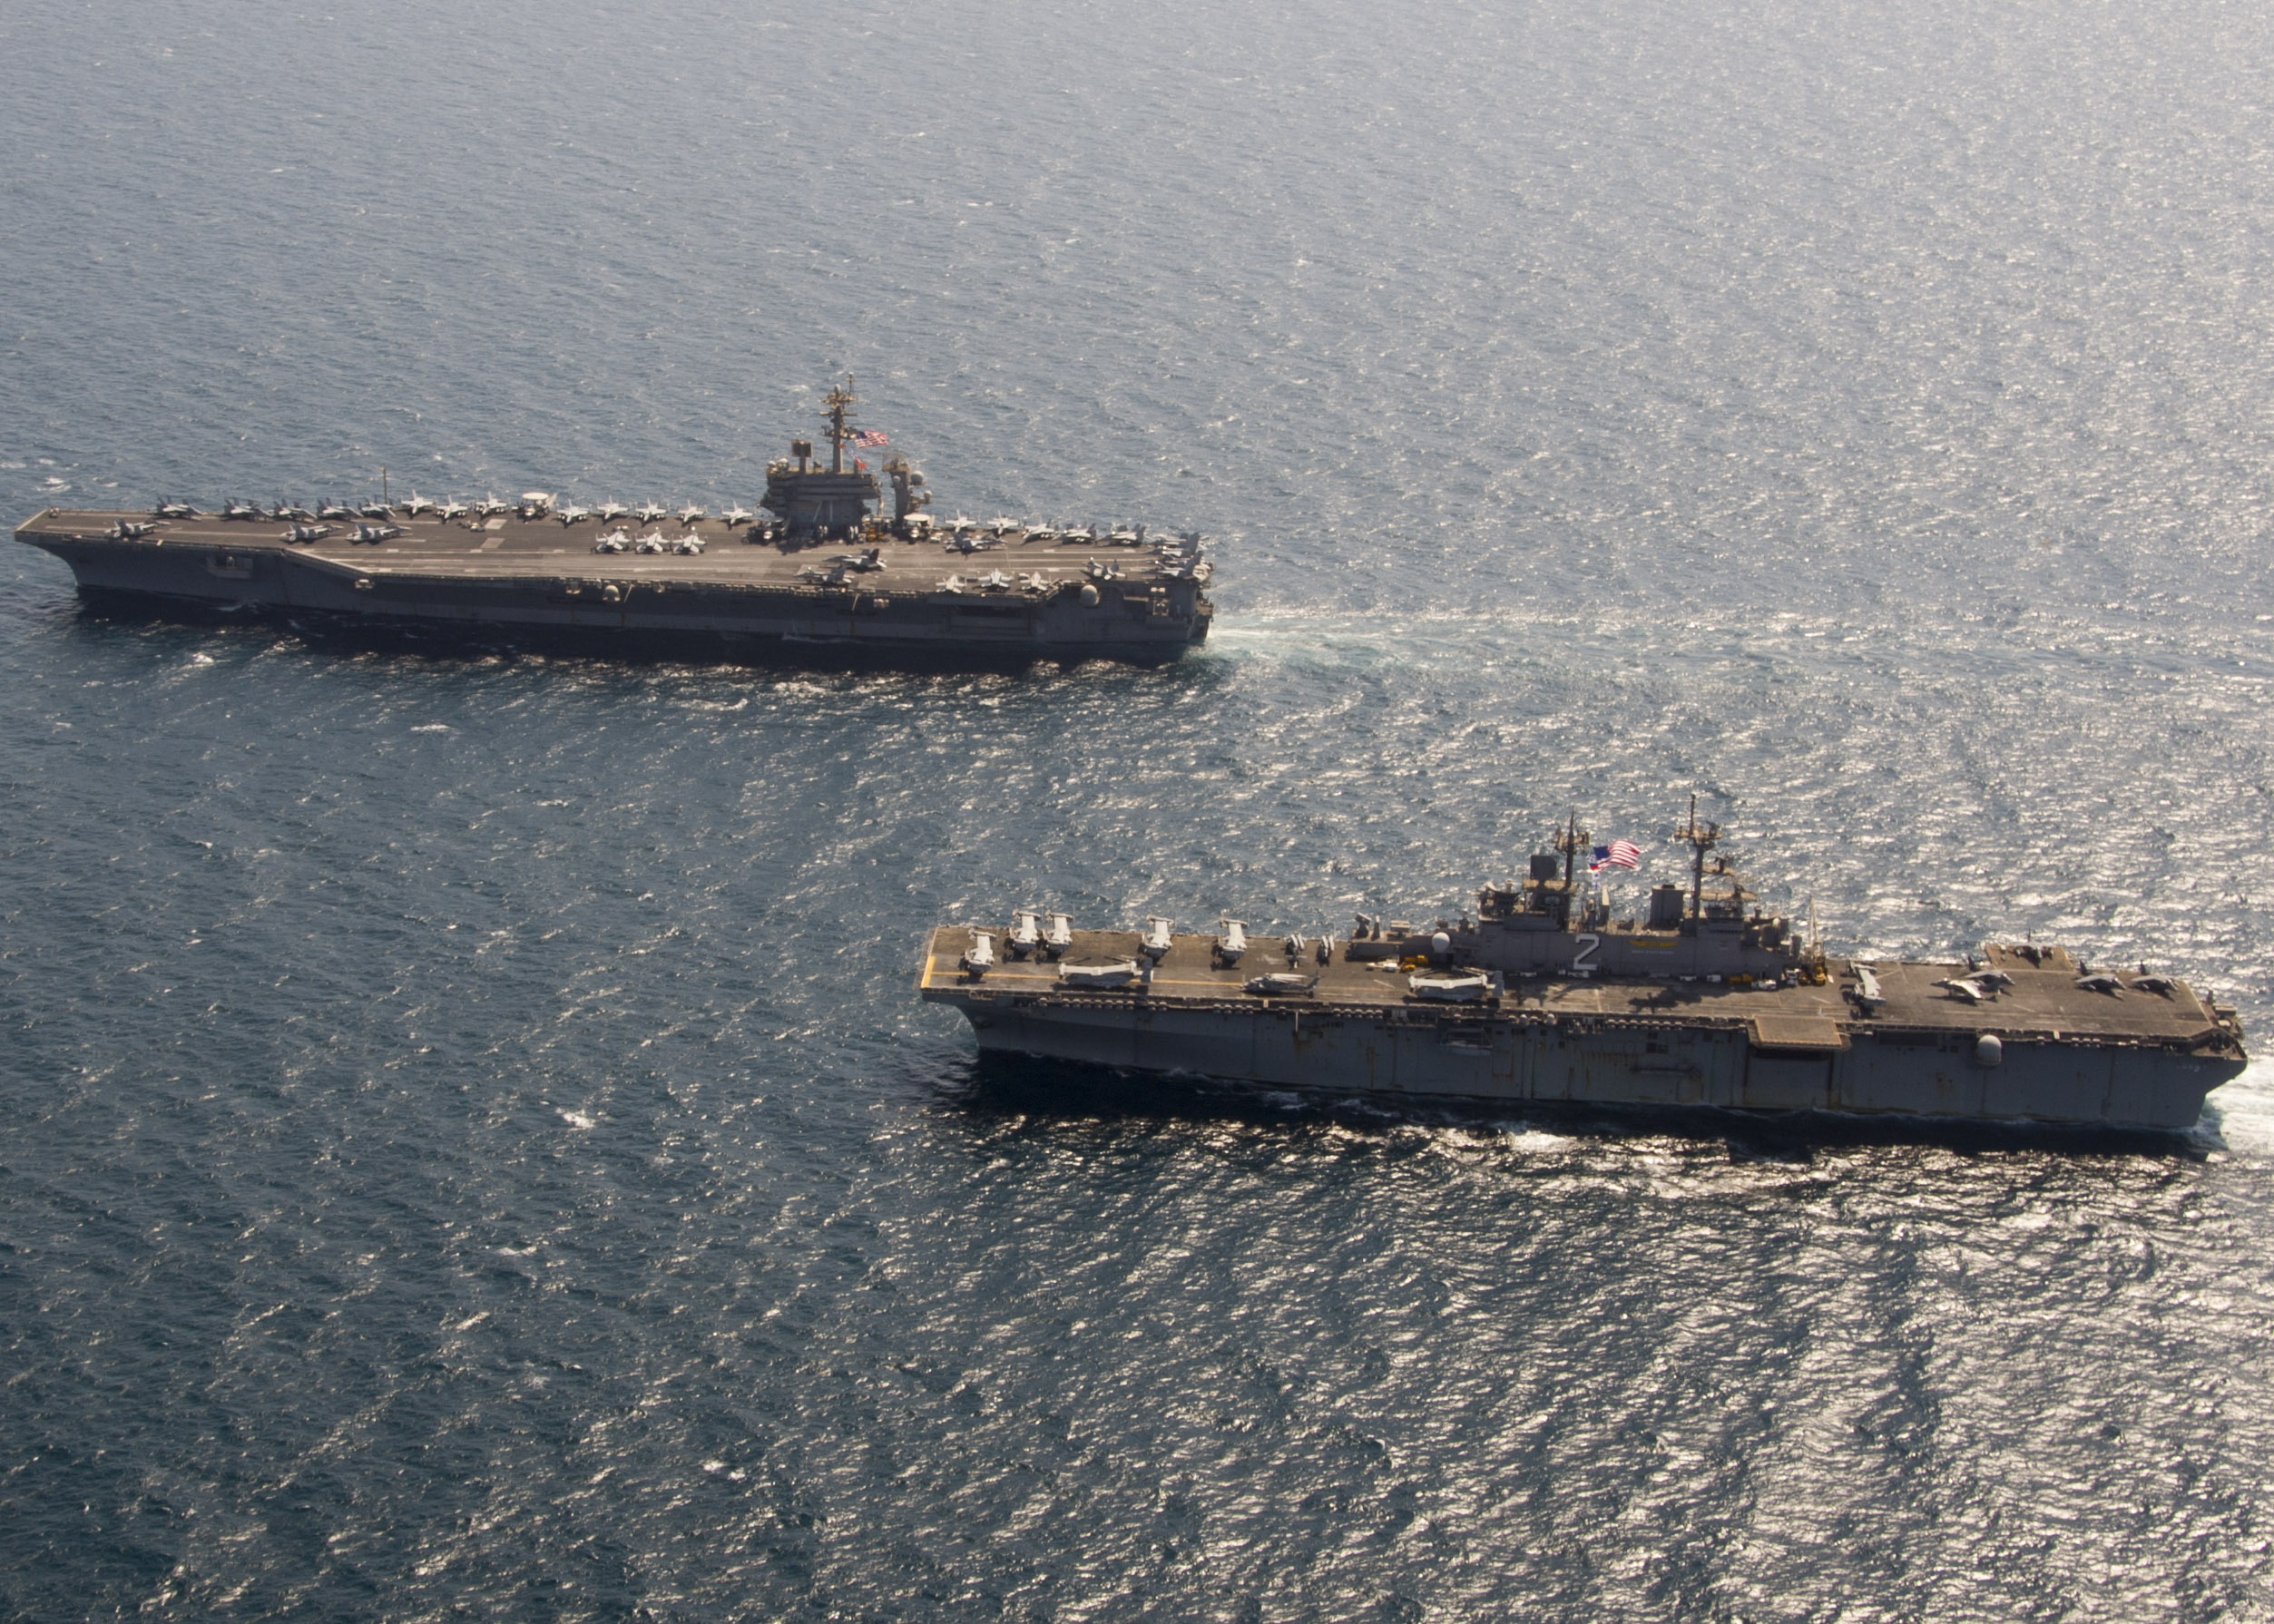 The Wasp-class amphibious assault ship USS Essex (LHD 2) and aircraft carrier USS Theodore Roosevelt (CVN 71) both spent much of 2015 launching aircraft in support of Operation Inherent Resolve. US Navy photo.